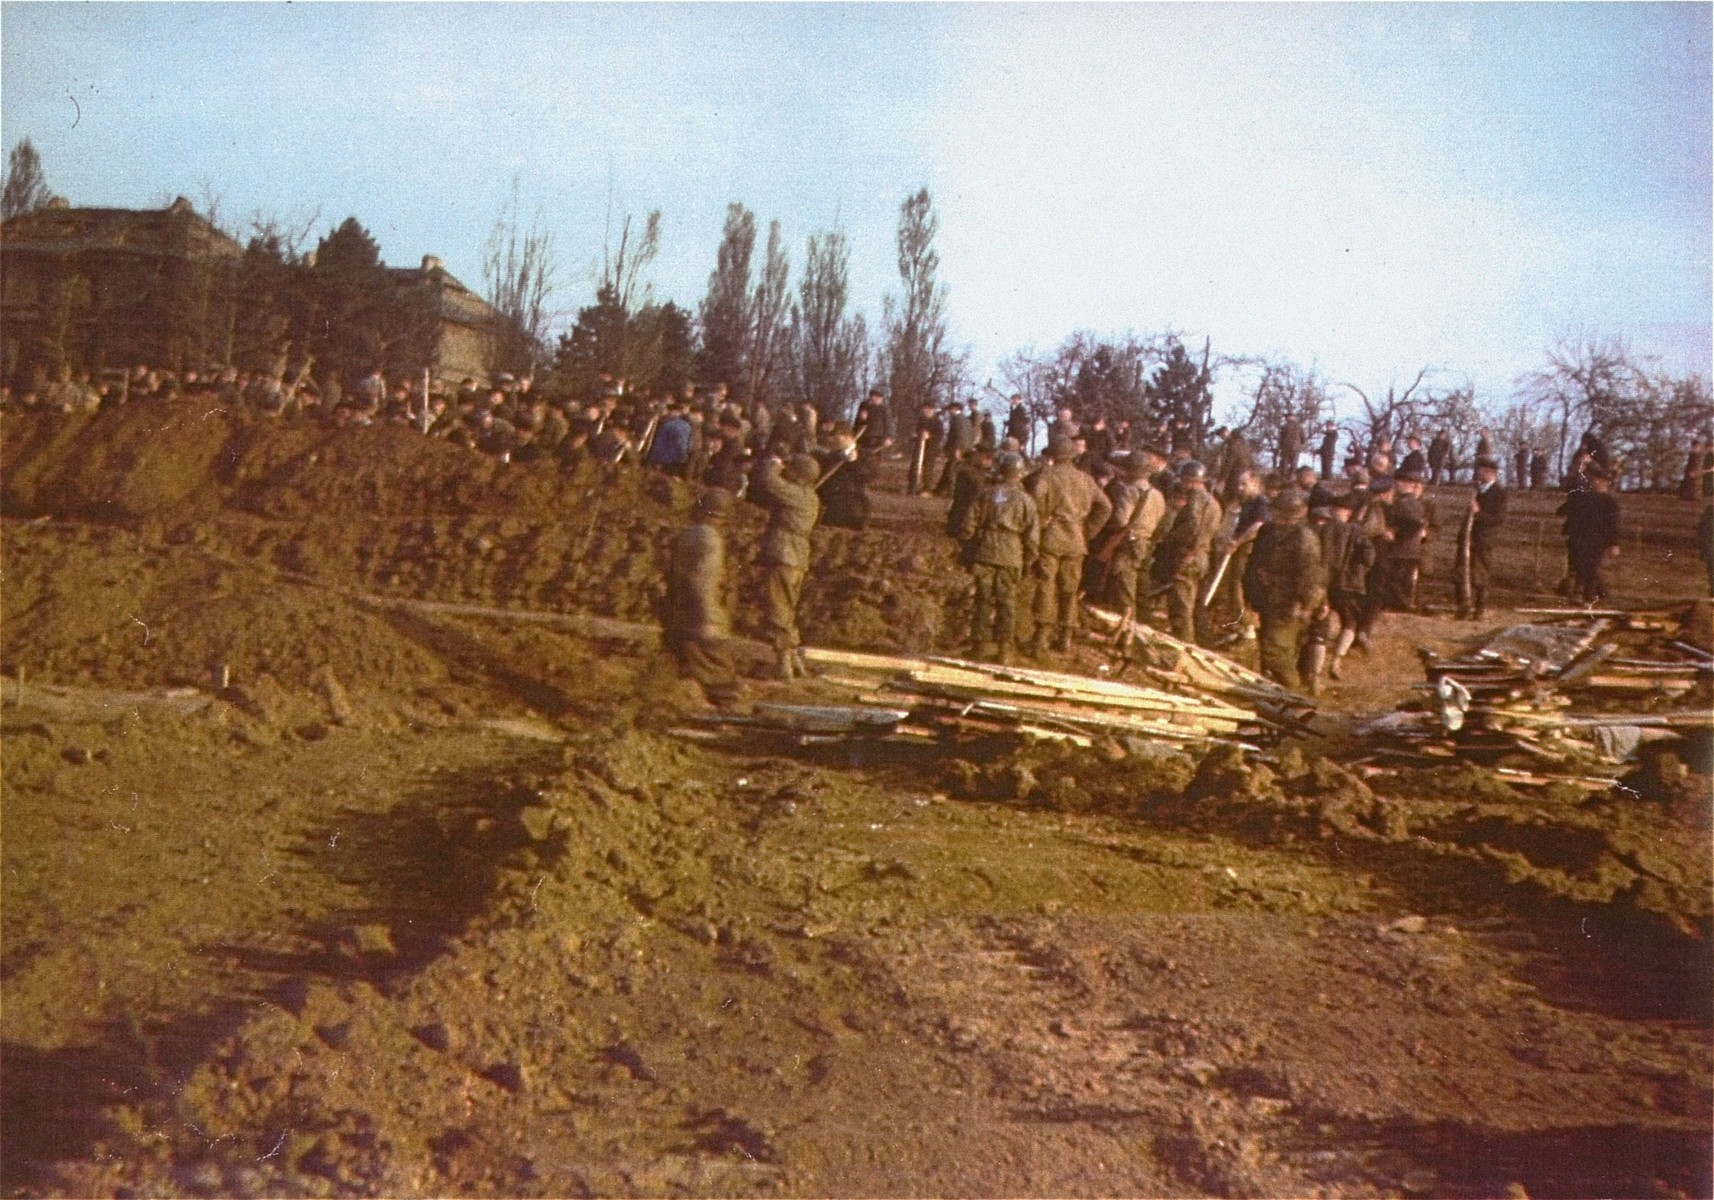 American soldiers watch as German civilians bury the corpses of prisoners found in the Nordhausen concentration camp.